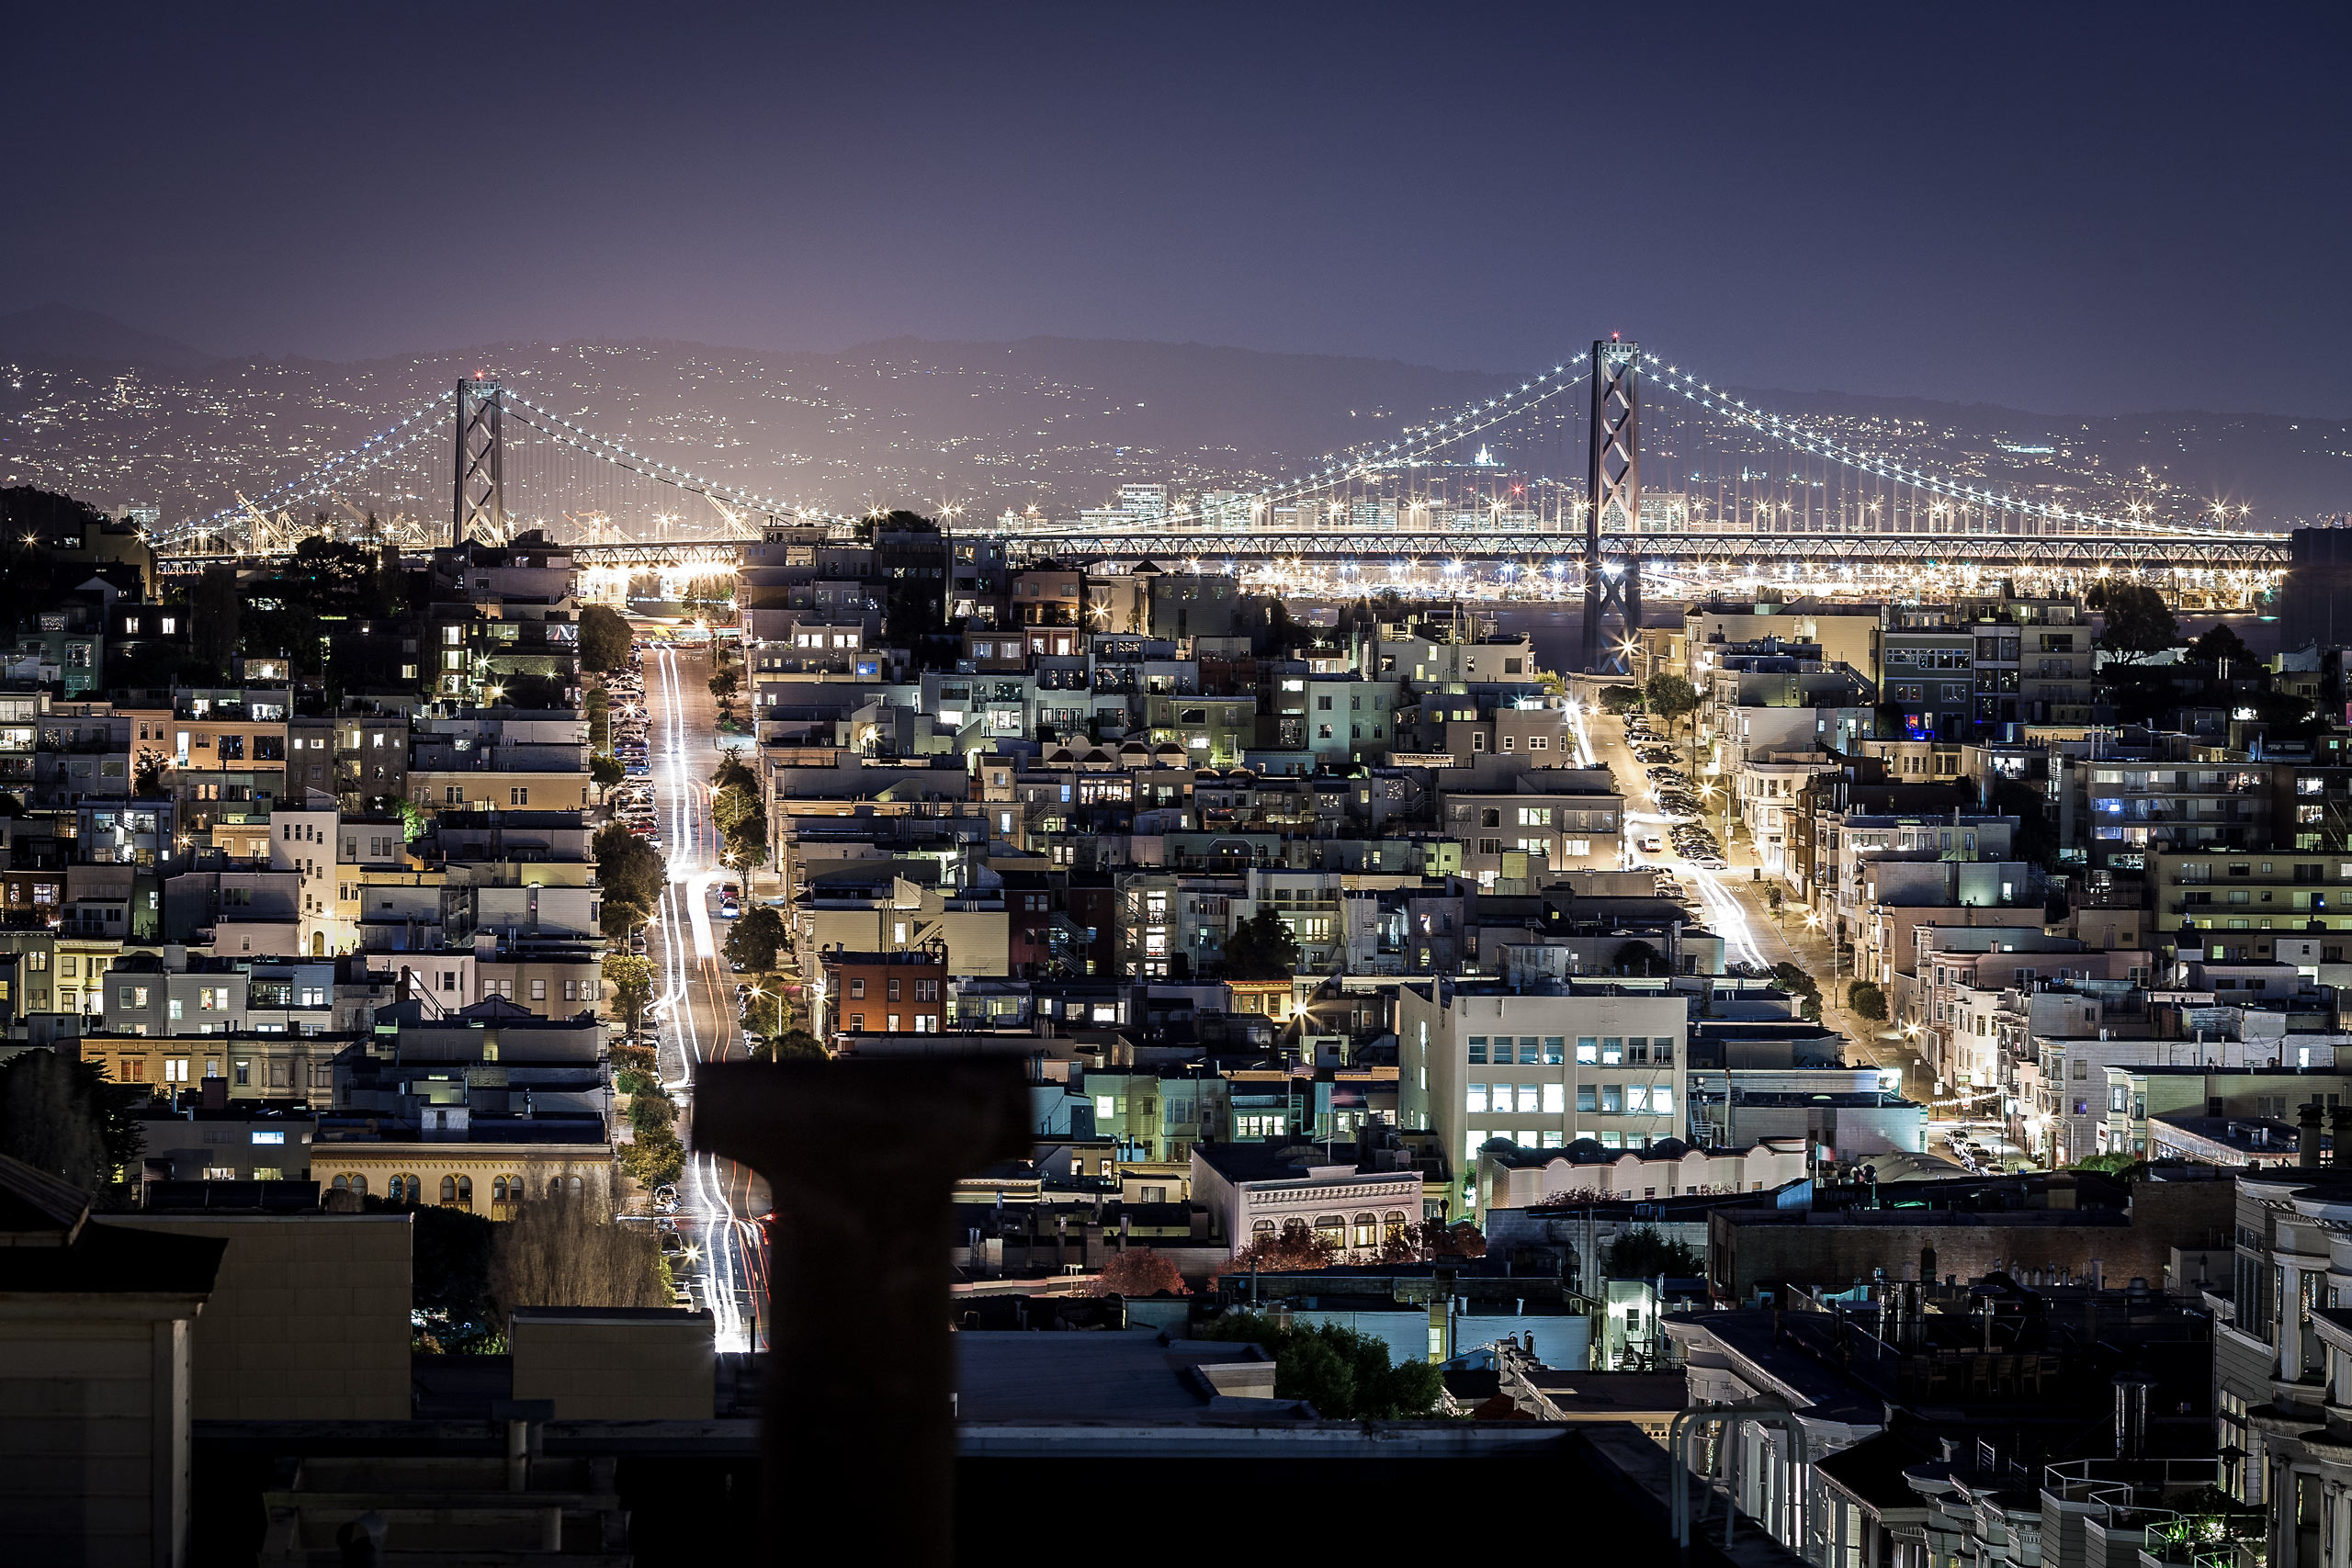 SF-NIGHTVIEW-01-3595